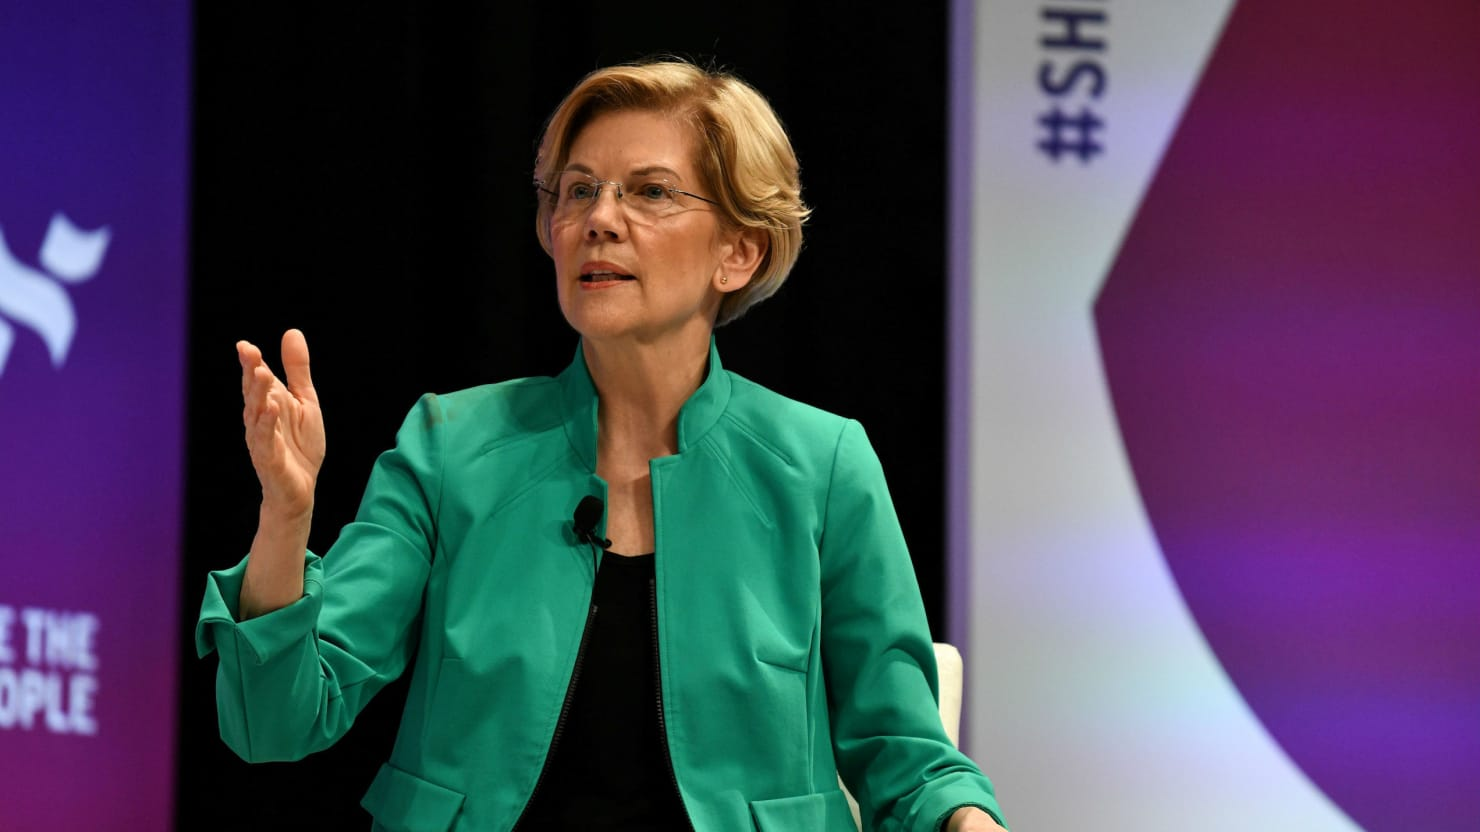 Elizabeth Warren Rolls Out Plan to Protect Abortion Rights: 'It's Time to Fight Back'